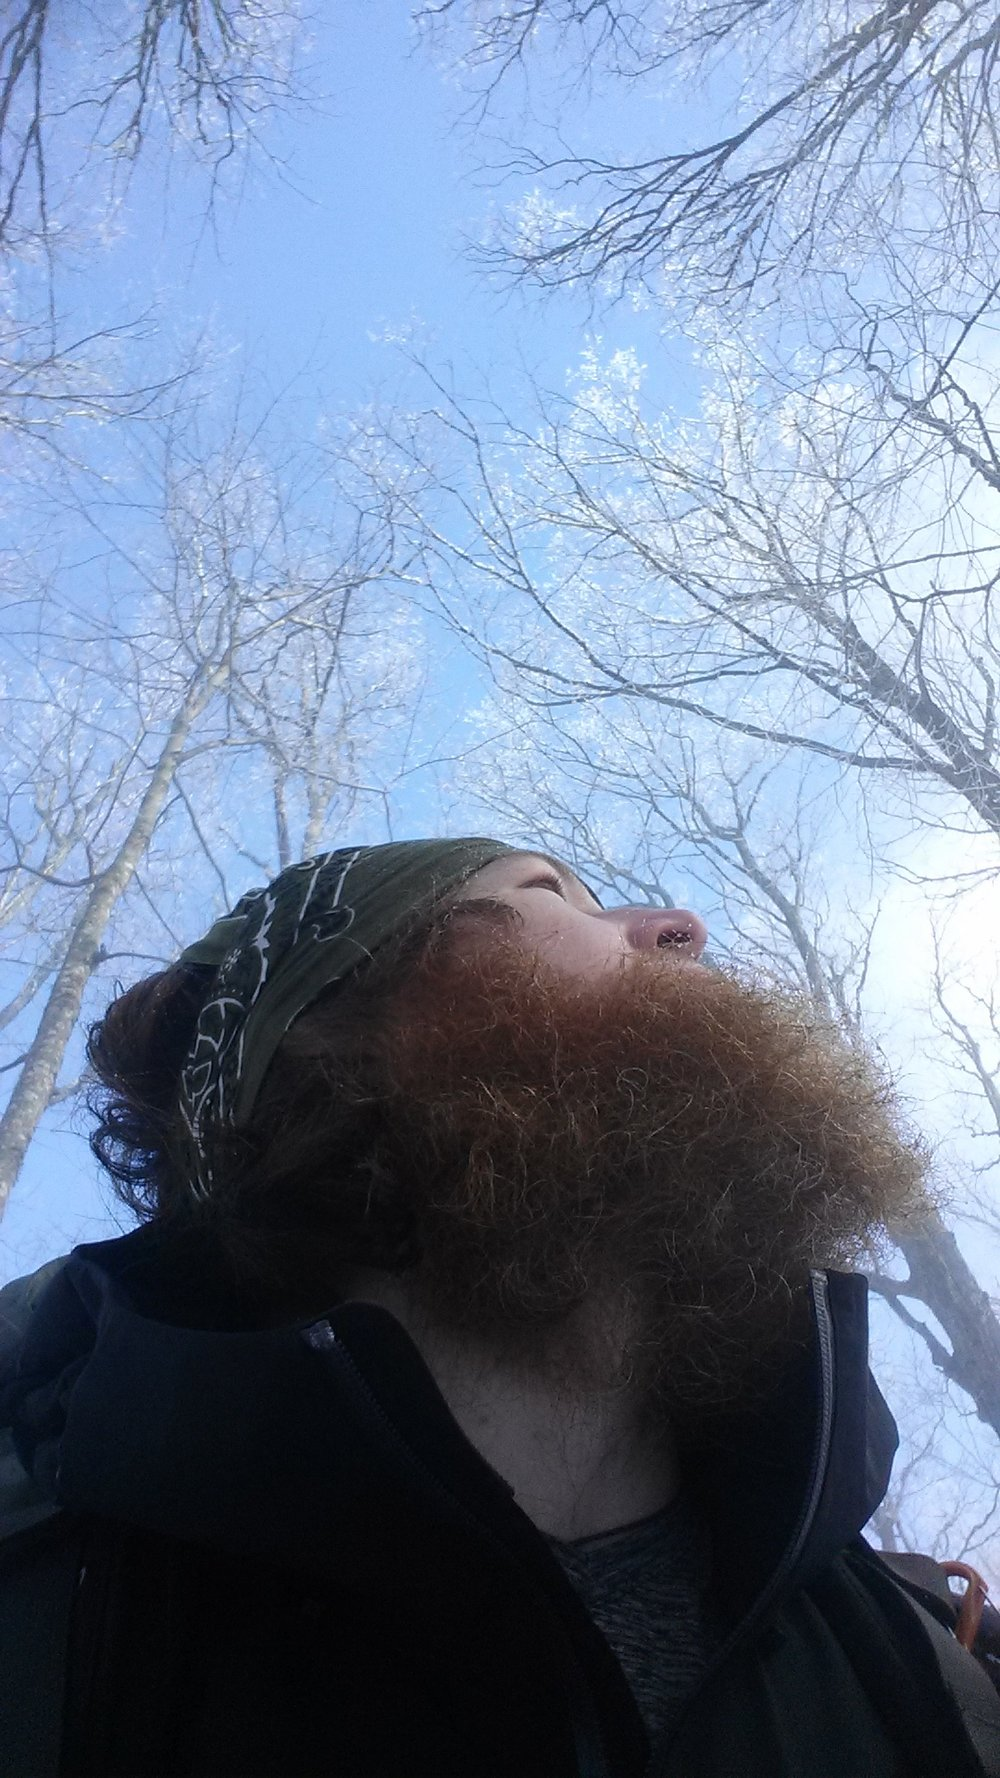 Beards are a wintertime necessity!